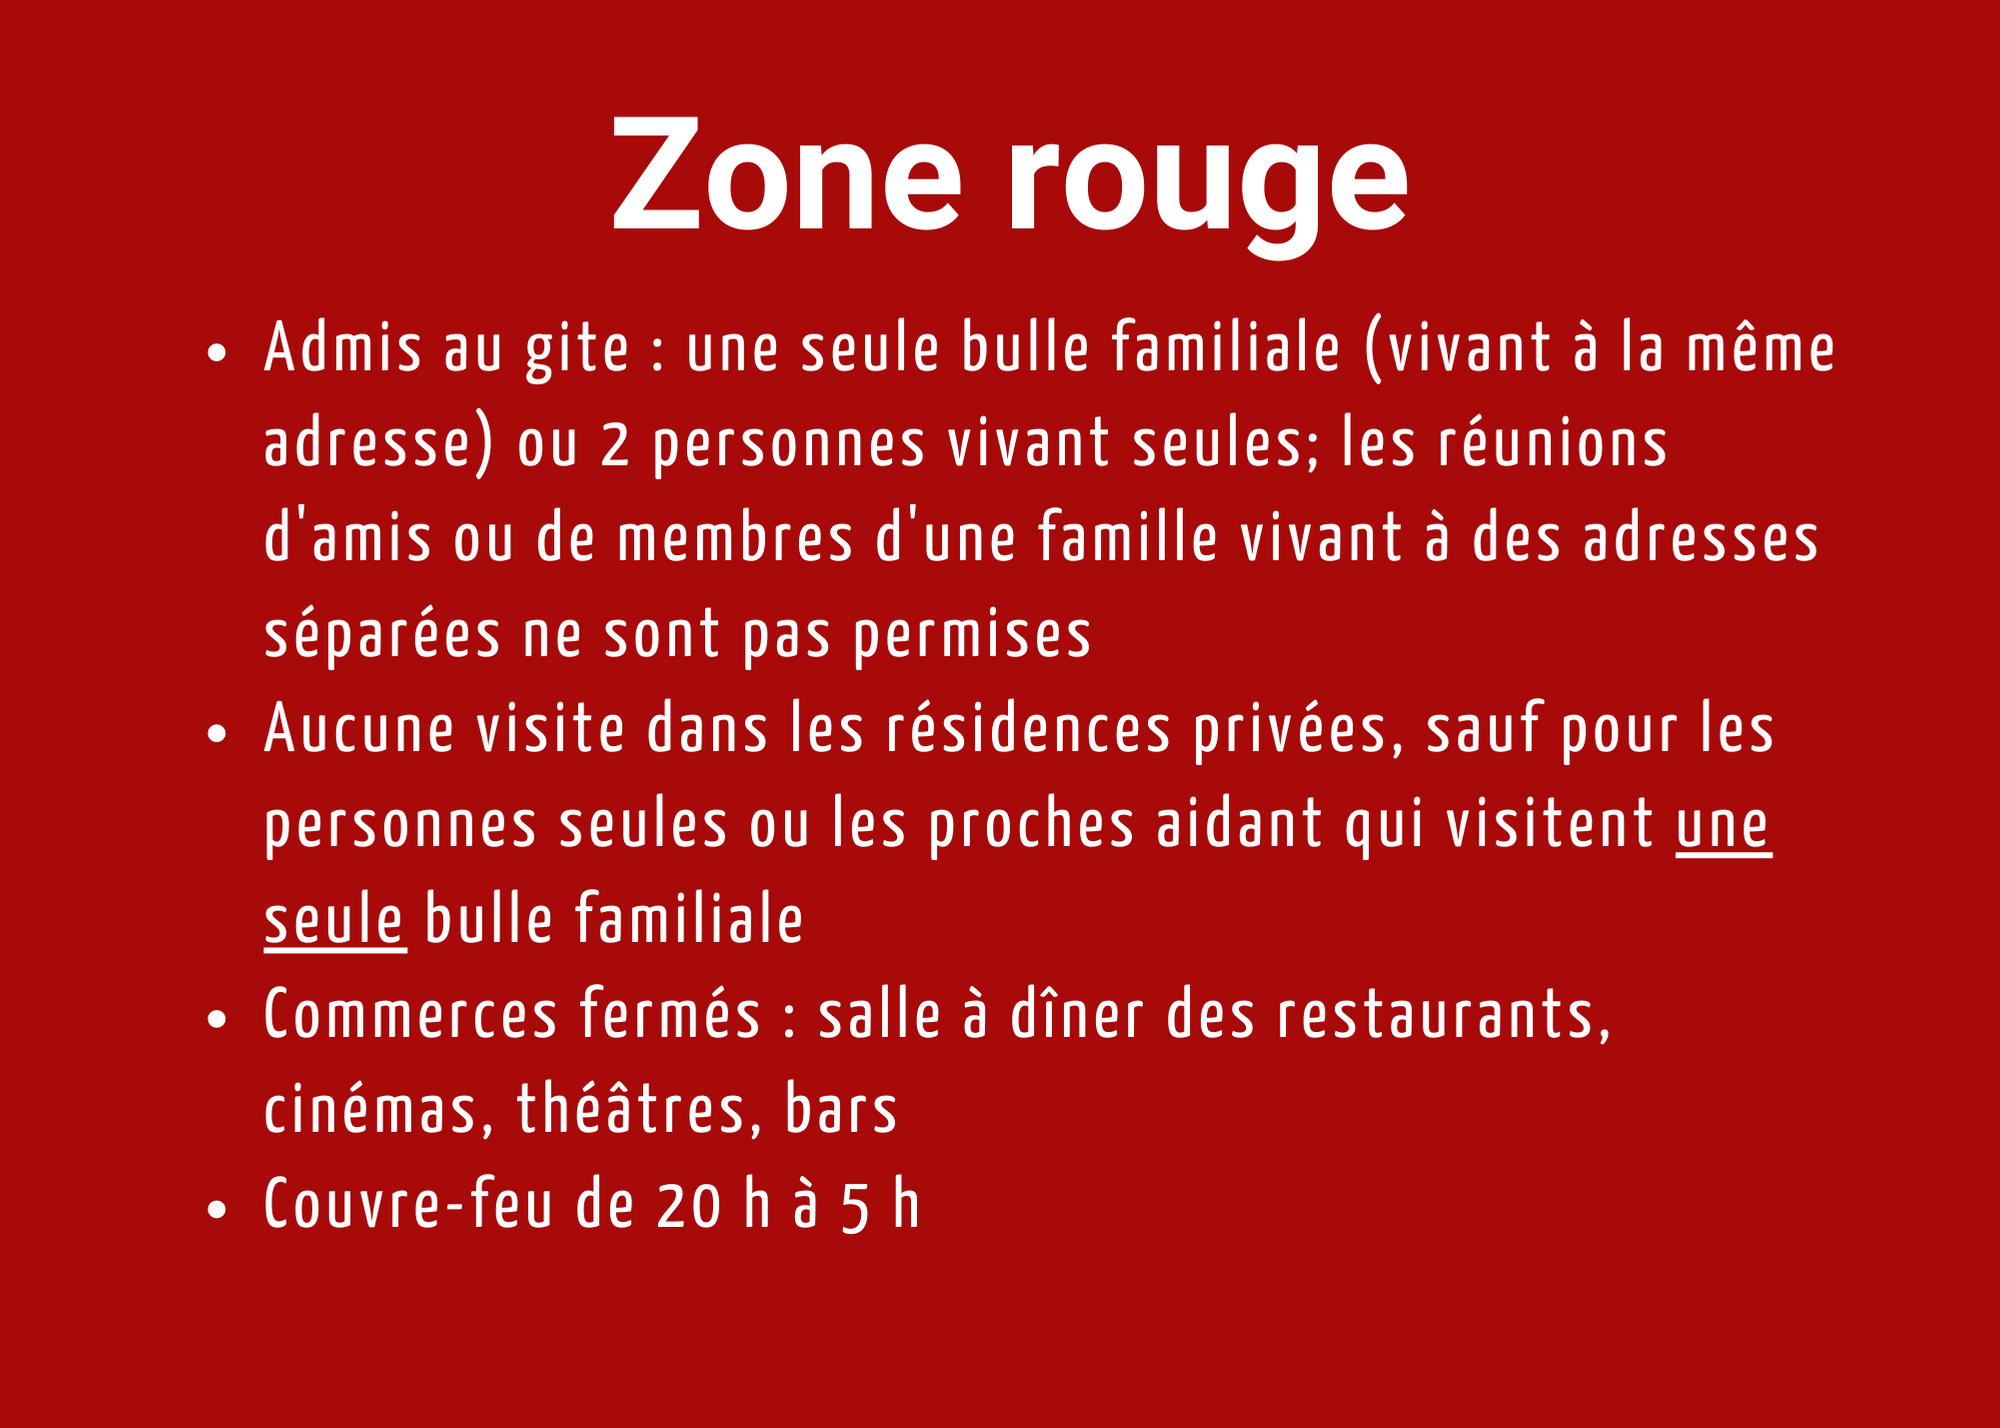 Auberge Tom B&B - zone rouge